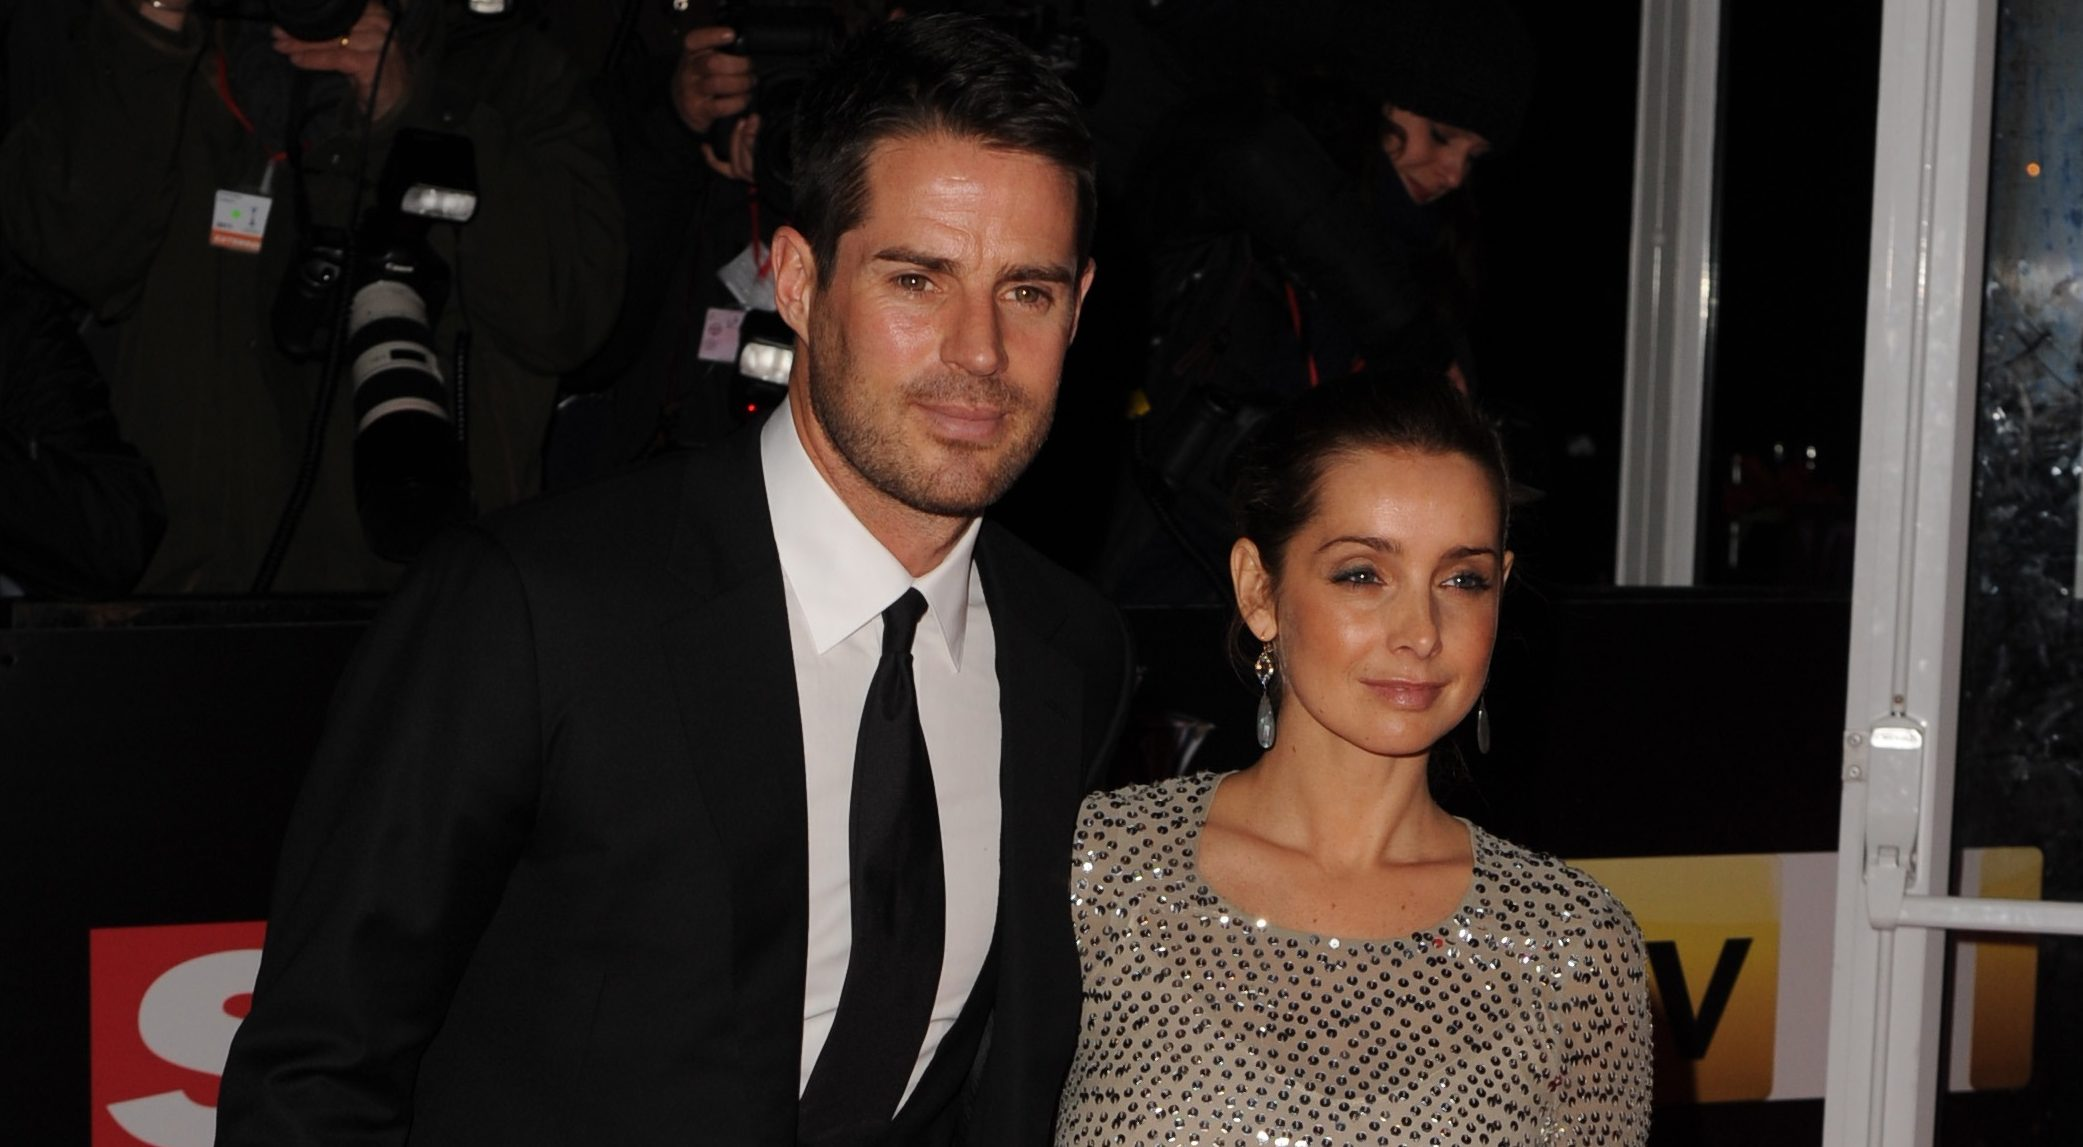 Jamie Redknapp reportedly 'unhappy at being blamed for Louise divorce'